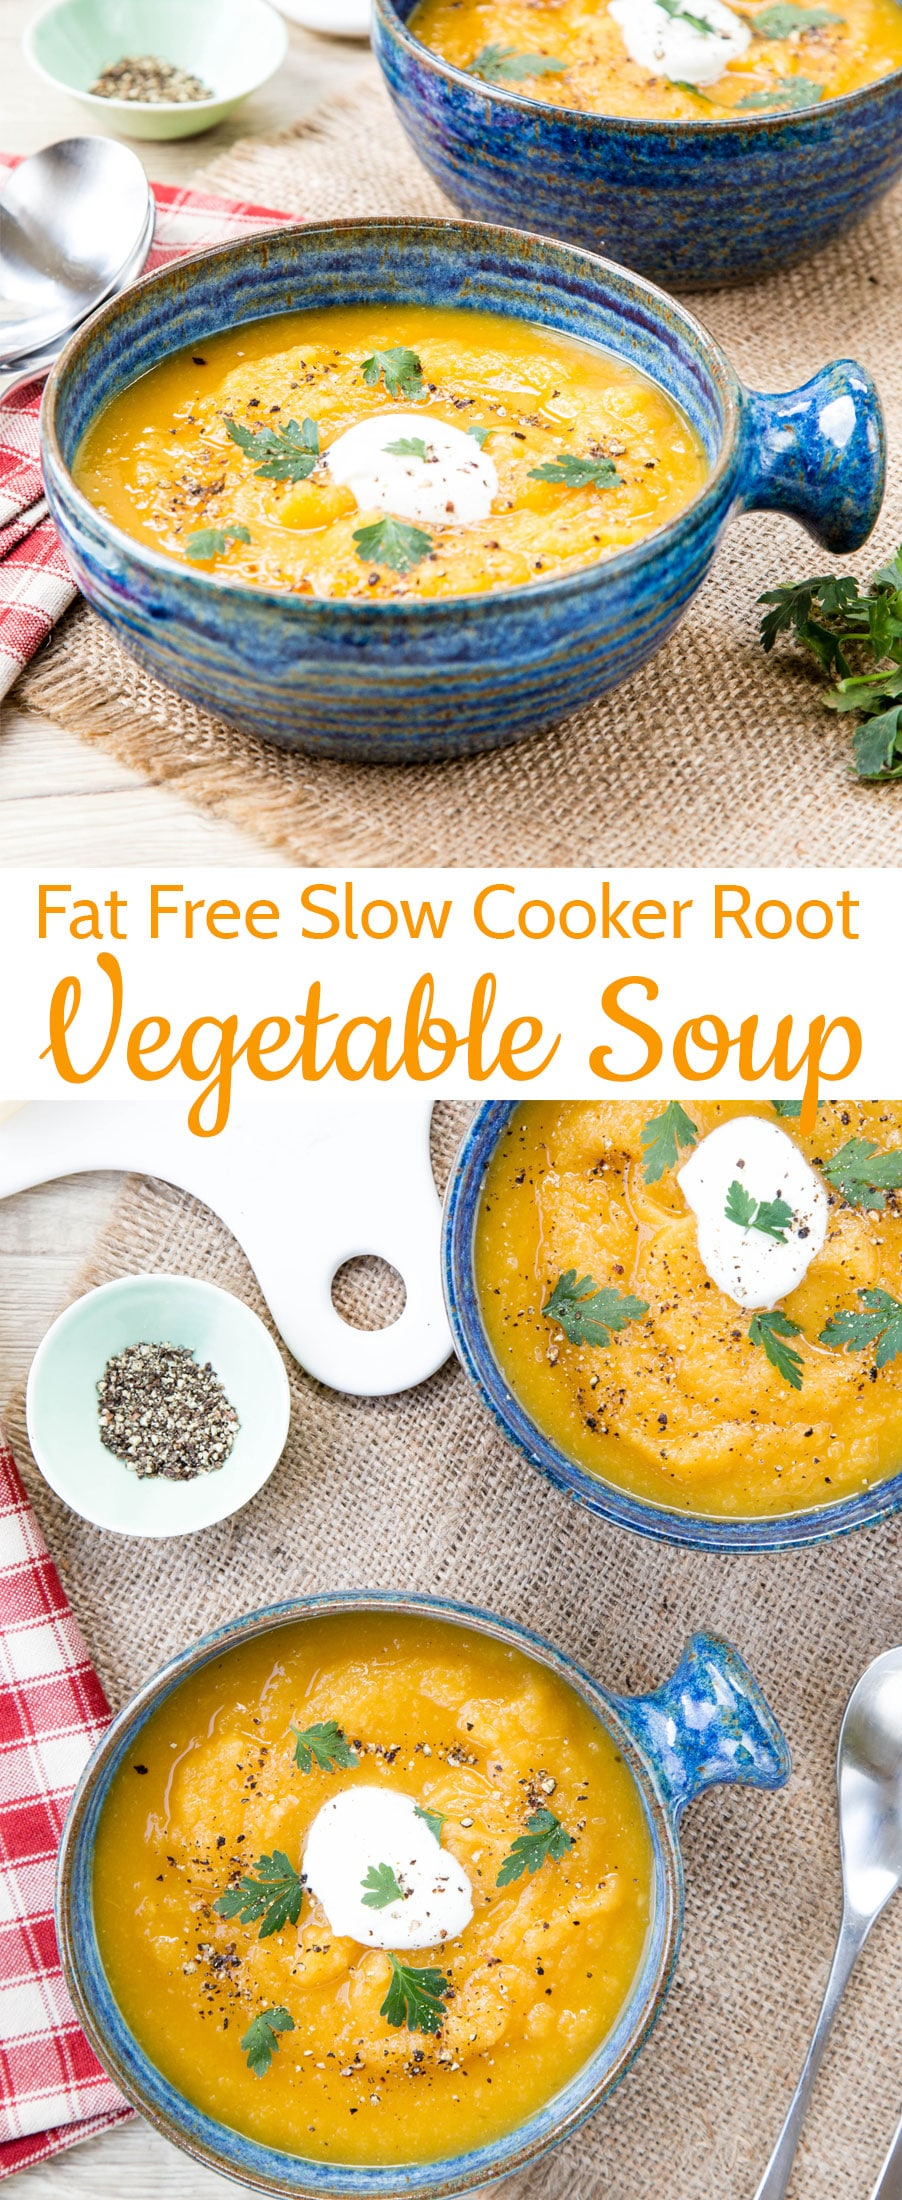 This no fat slow cooker vegetable soup is hearty, delicious and so simple to make. The slow cooked root vegetables are meltingly soft, and almost sweet